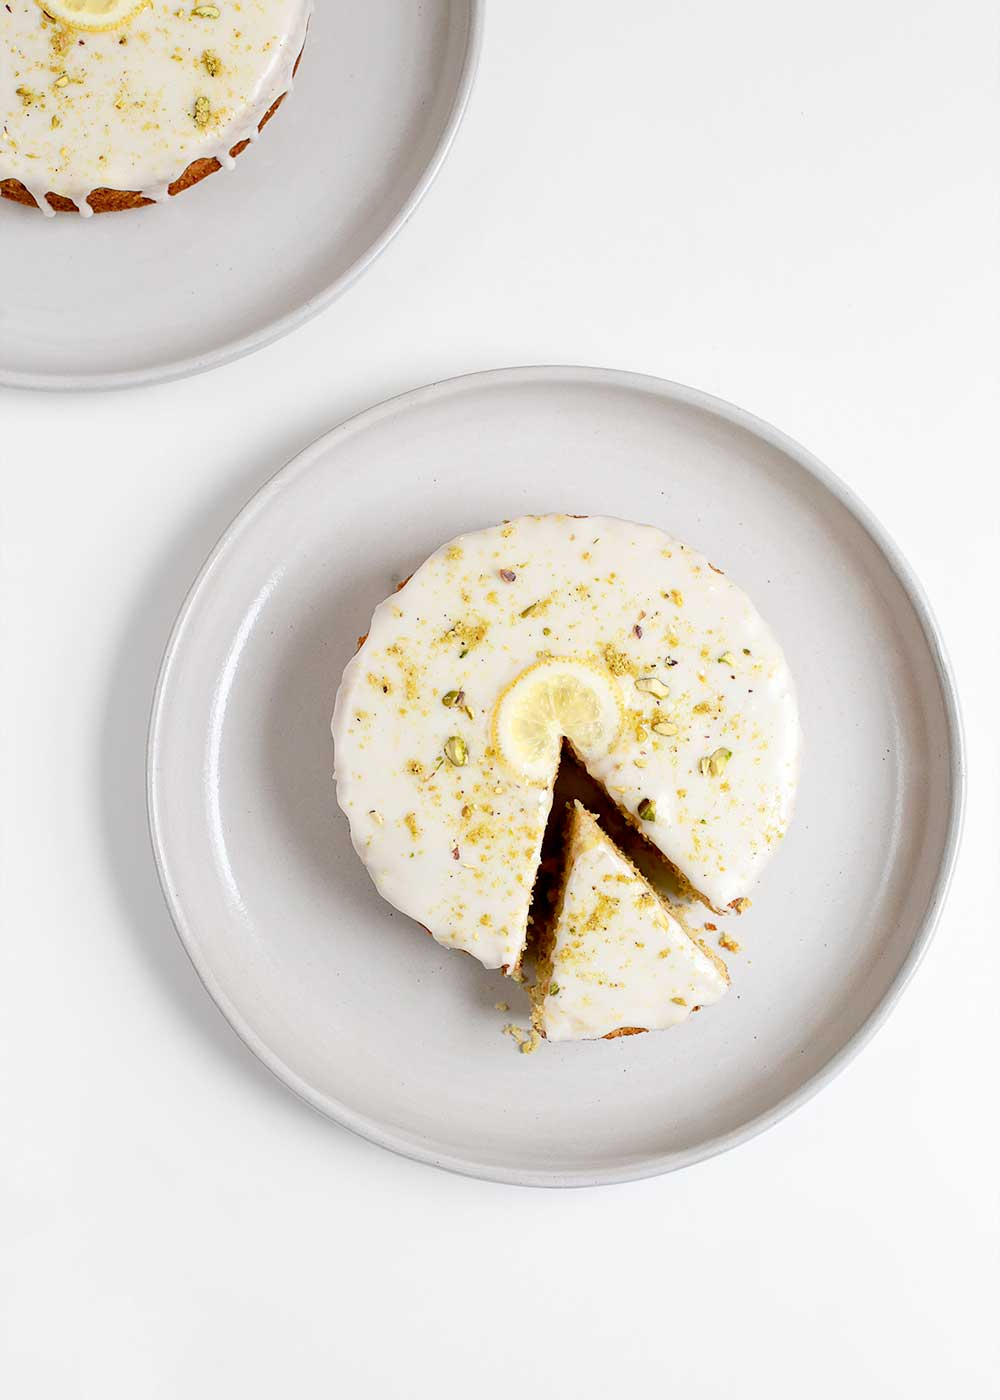 Lemon Olive Oil Pistachio Cake from Love and Lemons Every Day